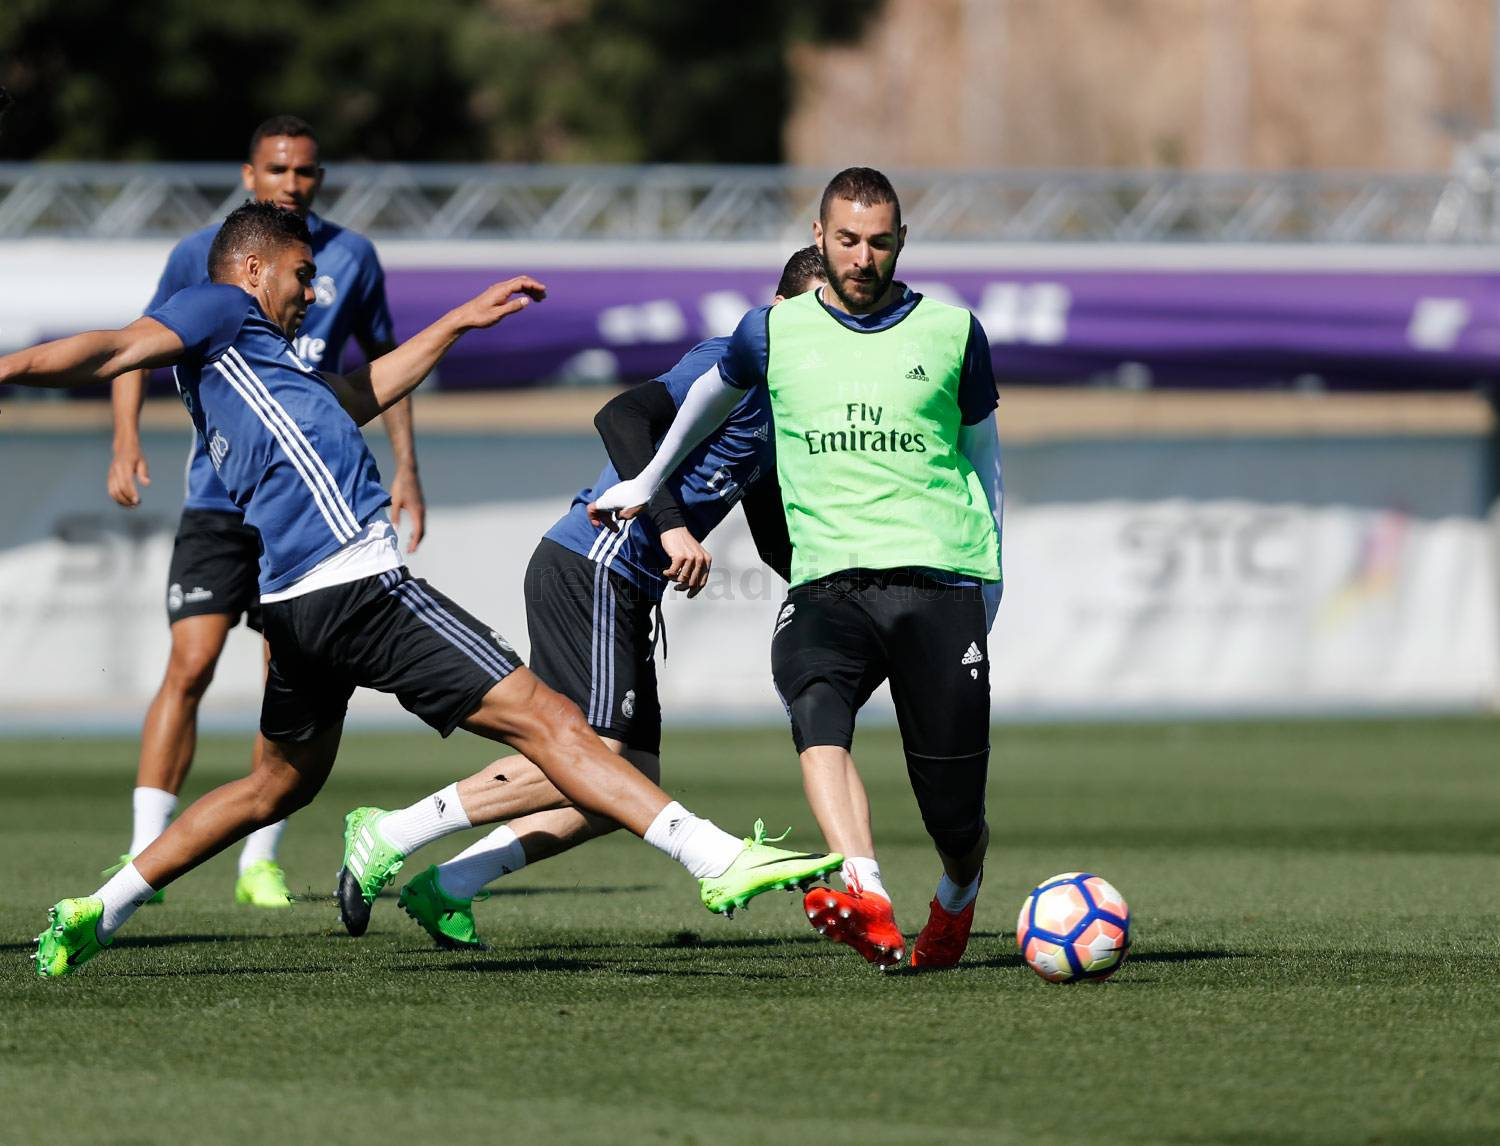 Real Madrid - Entrenamiento del Real Madrid - 15-03-2017